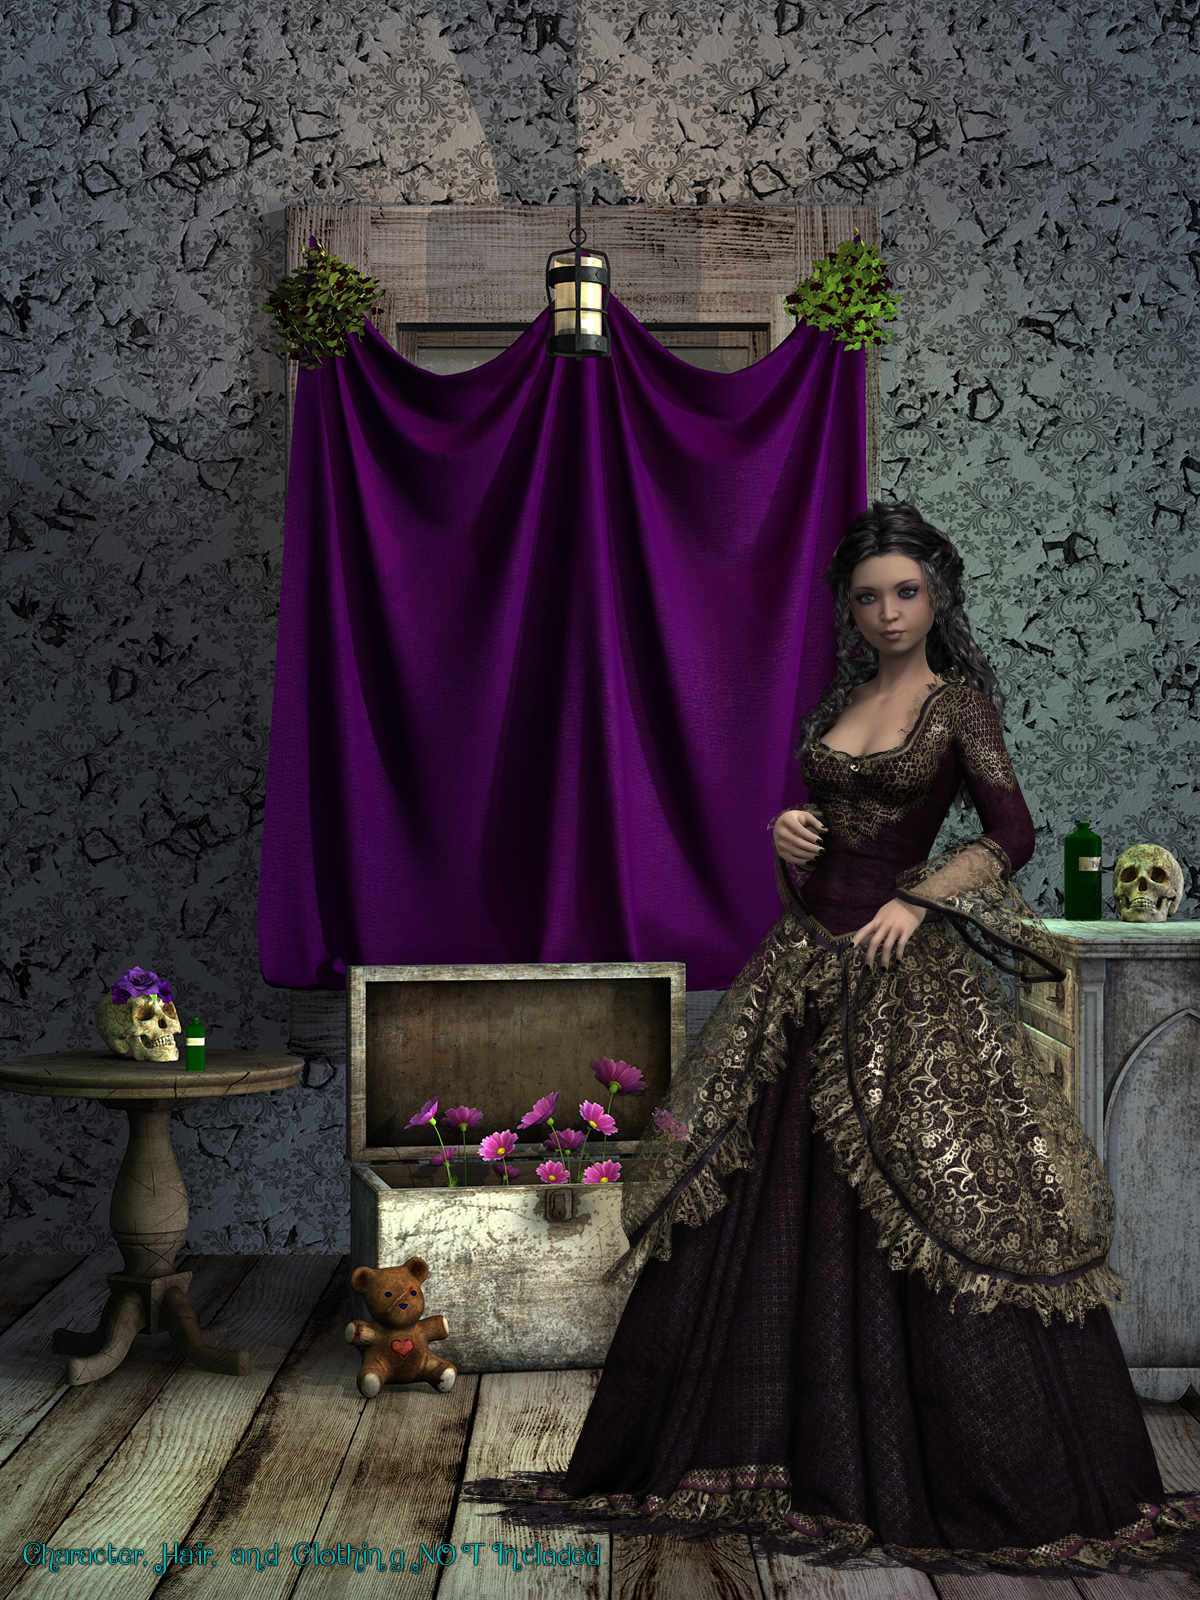 FB Gothic Dreams Backgrounds And Bonus